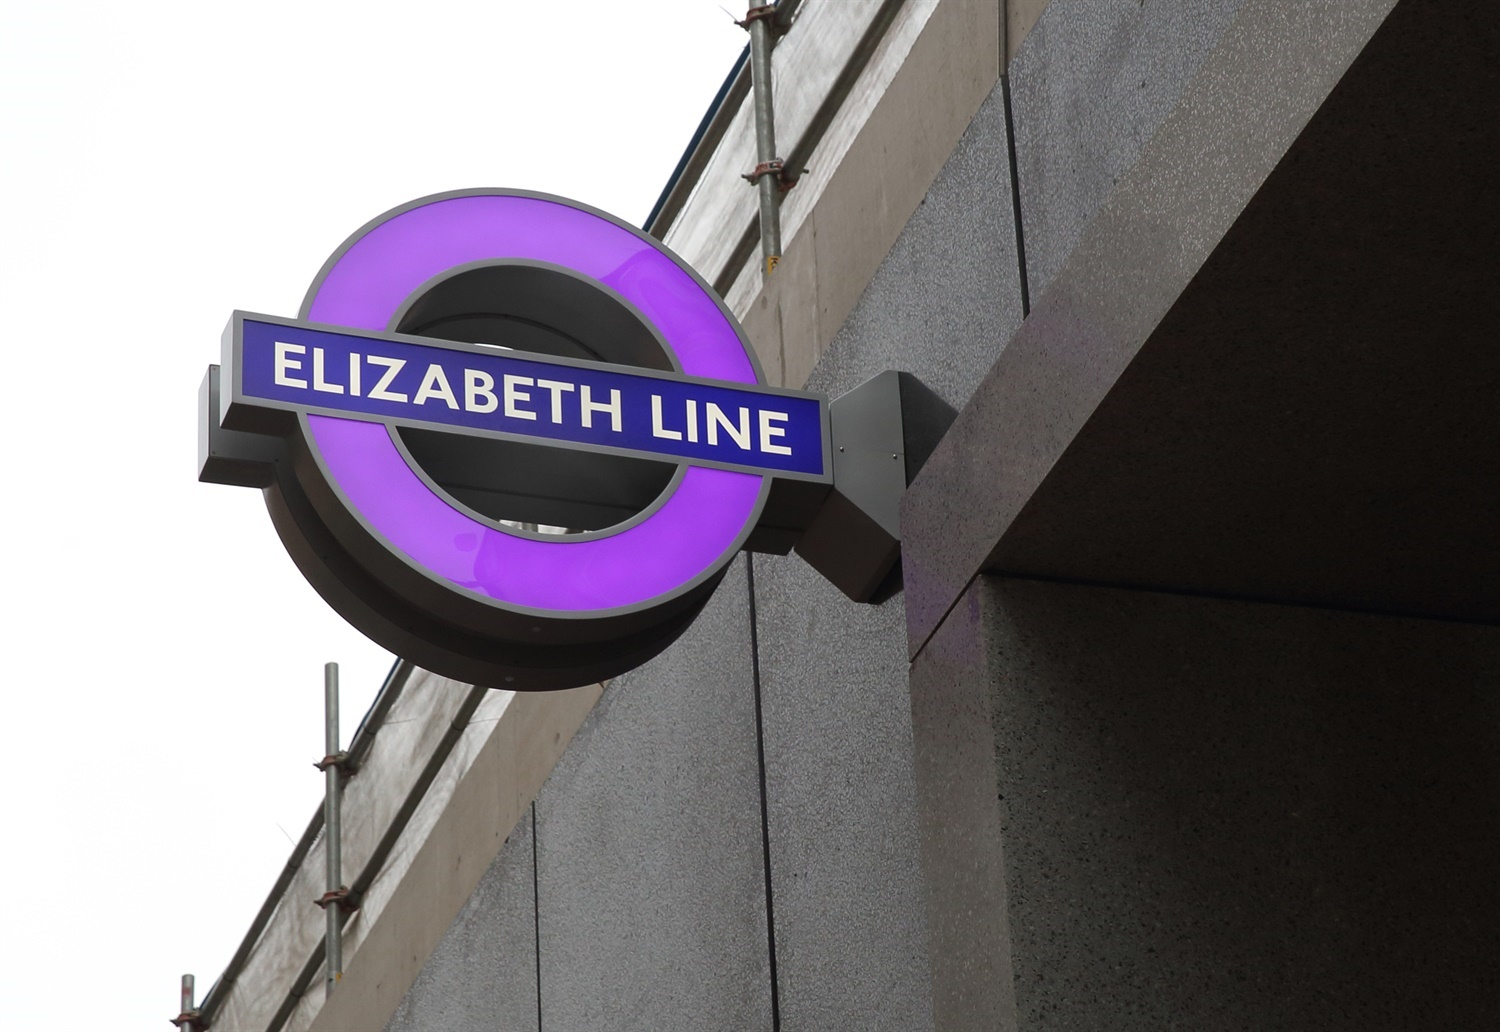 Crossrail will not open this year as launch delayed by at least 9 months